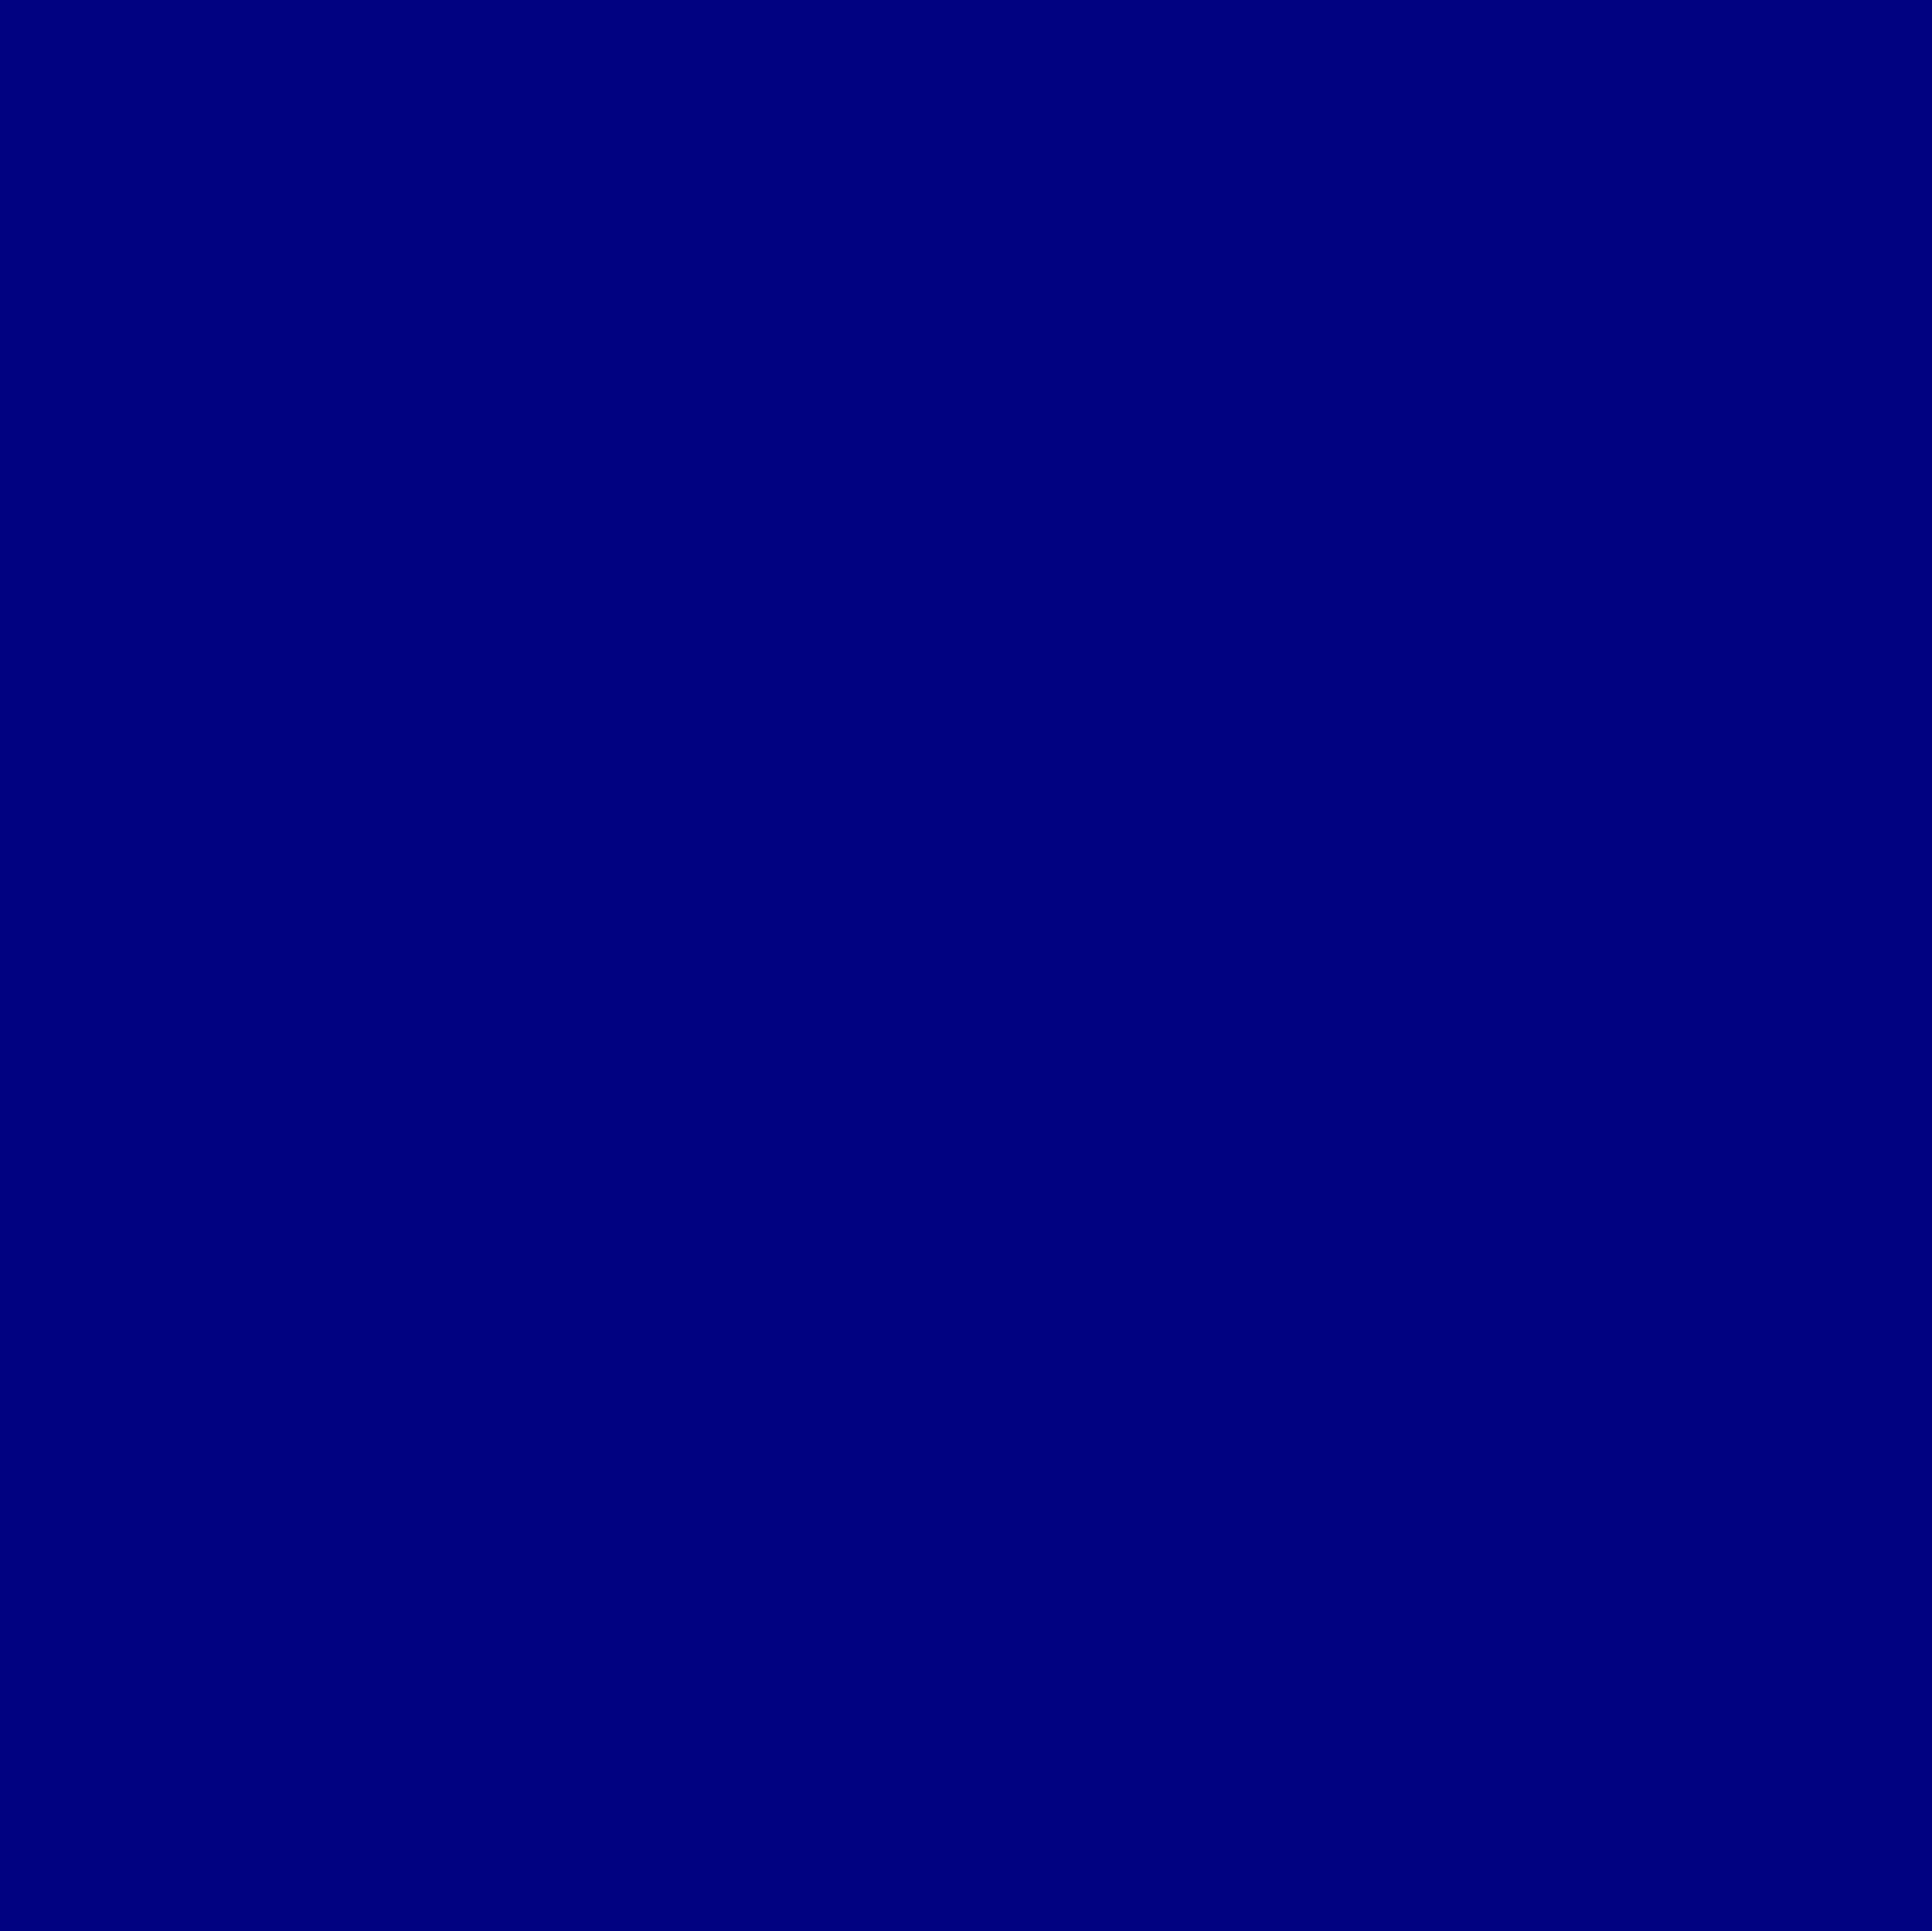 Royal Polyester Fleece Sweatshirt Fabric - Fabric By The Yard | Royal Blue  Background, Solid Color Backgrounds, Royal Blue Wallpaper